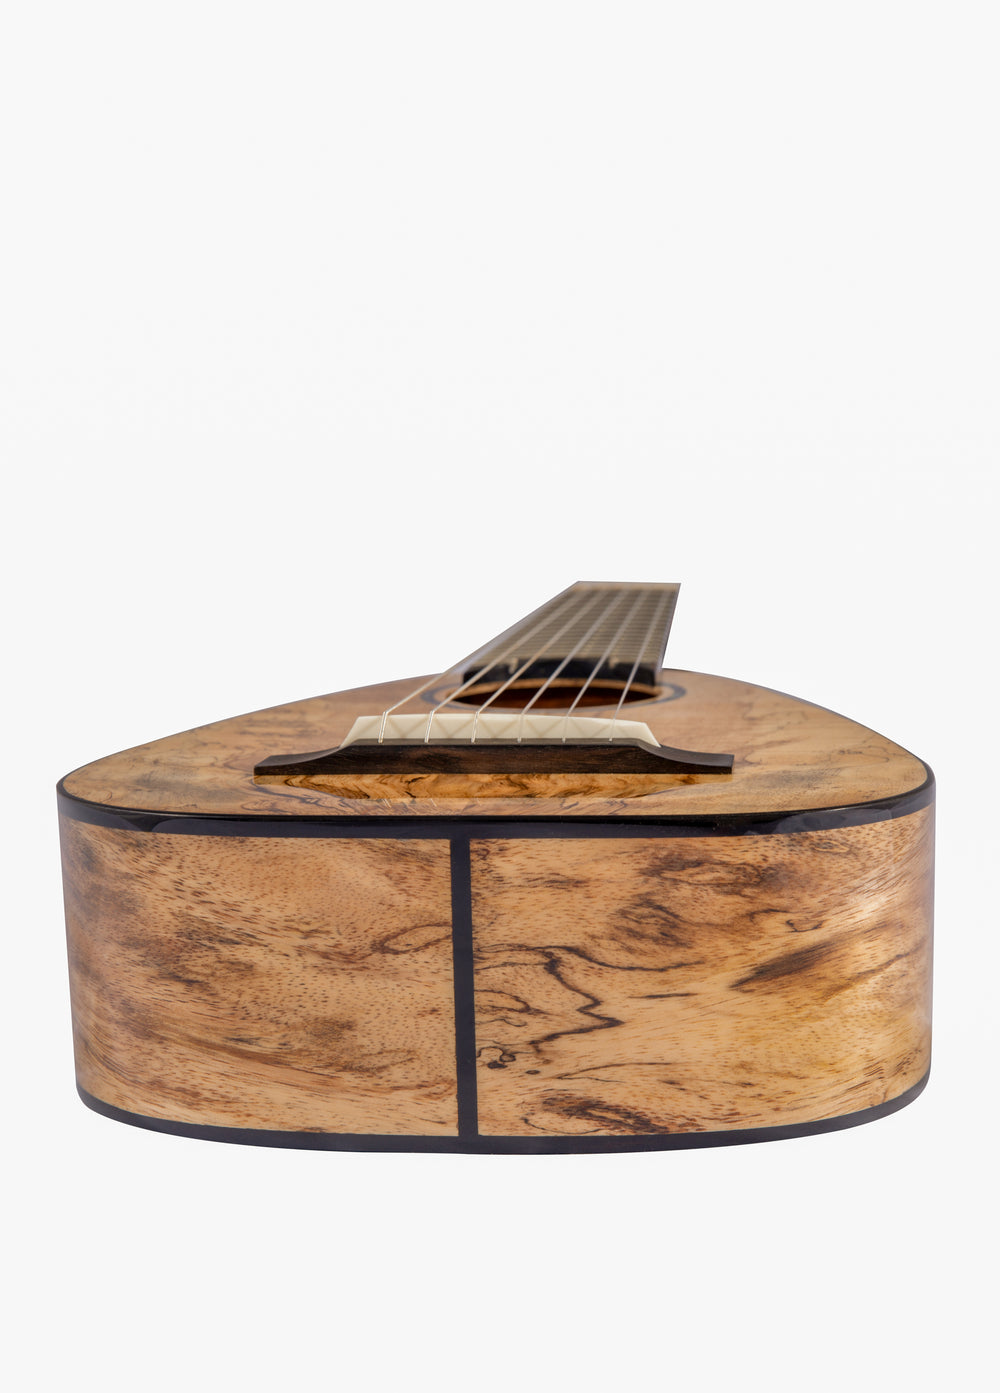 "Romero Creations Spalted Mango Tiny Tenor 6 String Guilele RC-TT6-MG ""Courage"""